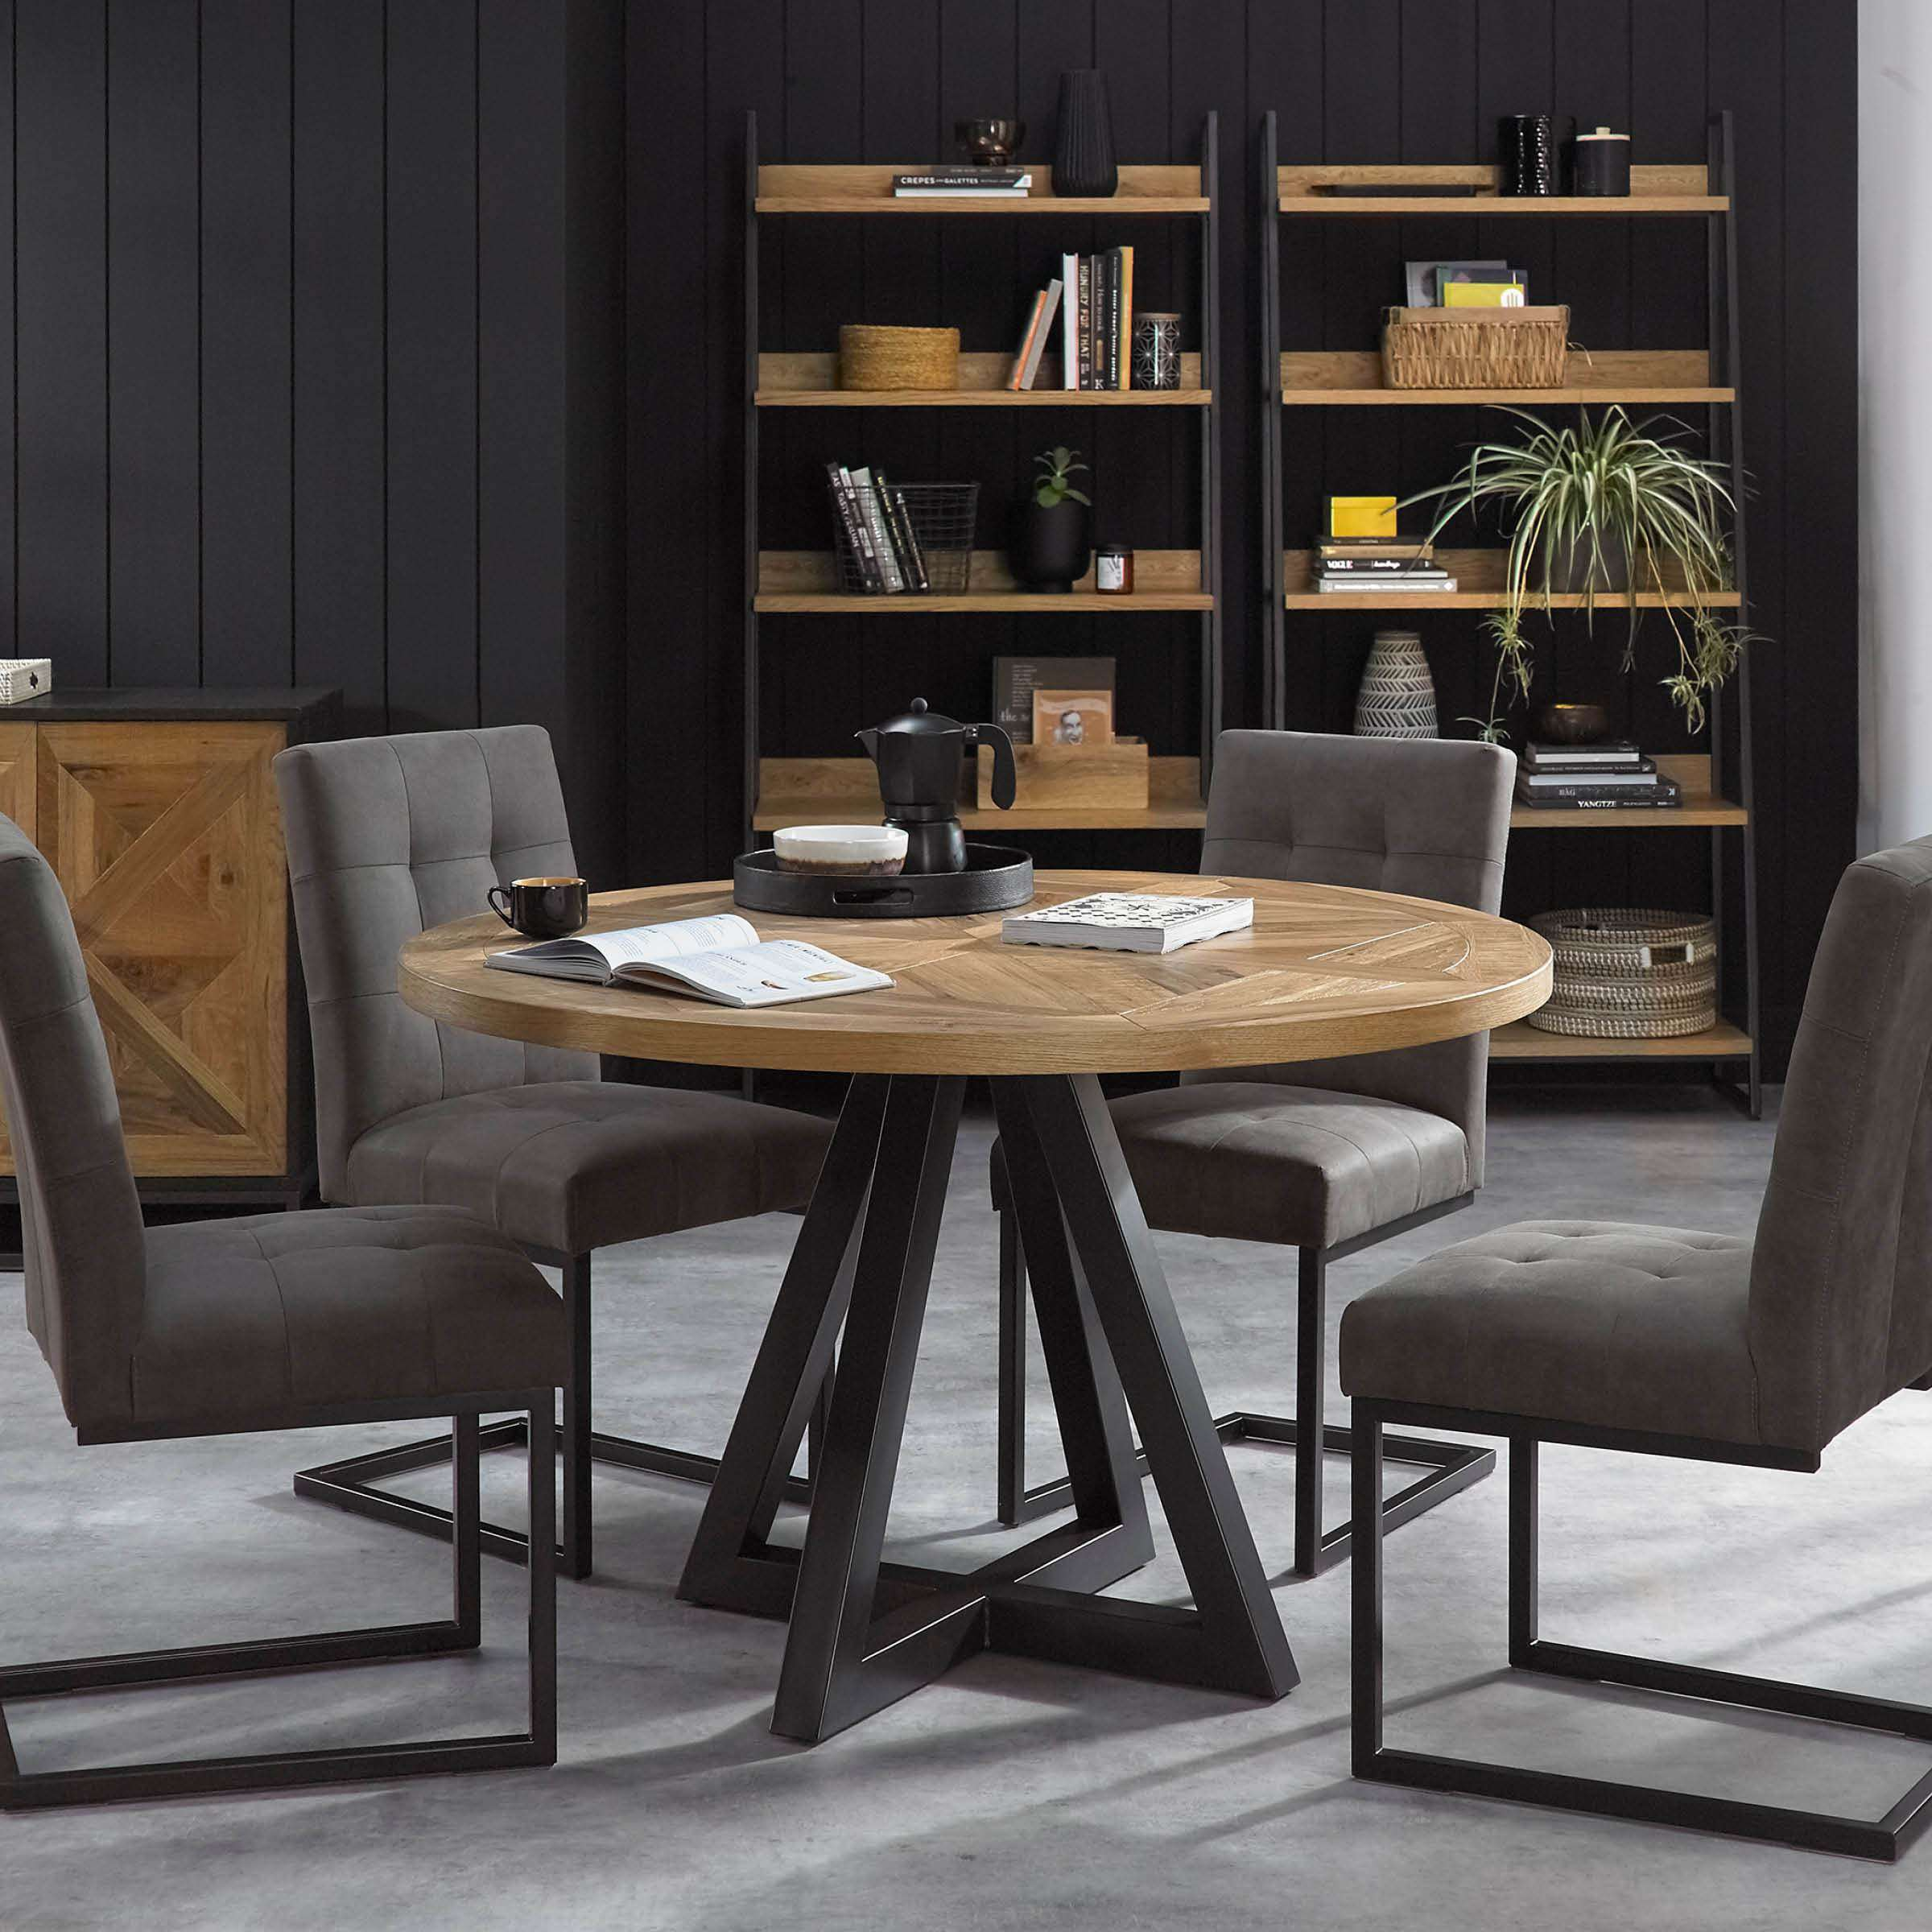 Picture of: Marbella Round Dining Table Furniture The Design Store Nz